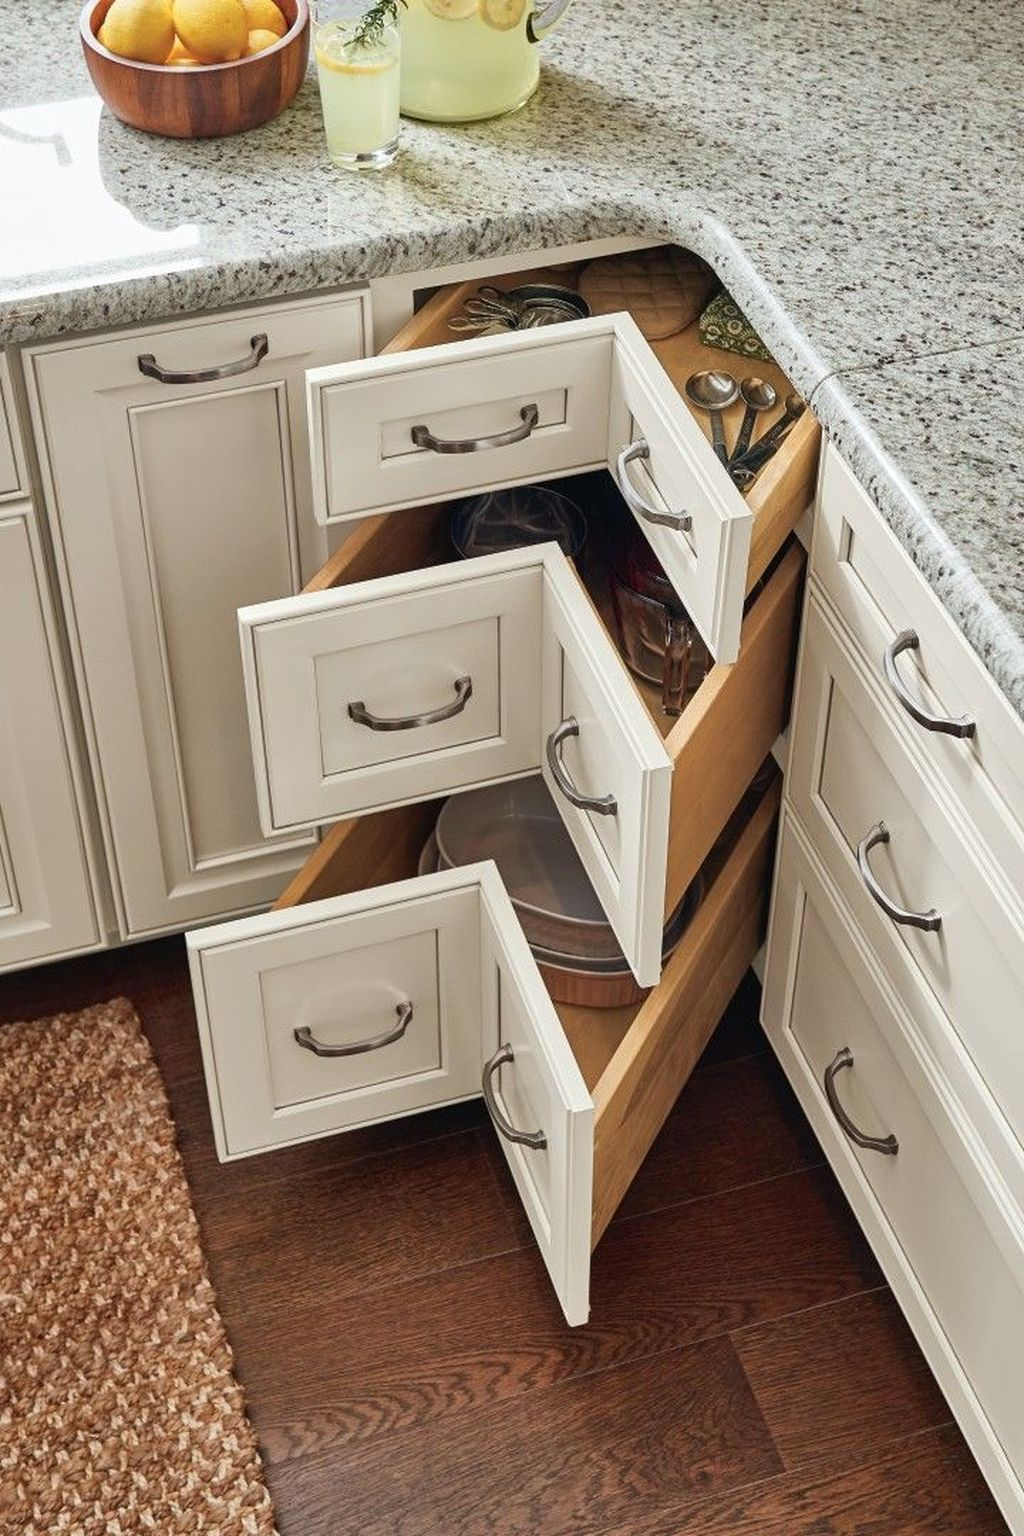 Affordable Kitchen Organization Ideas On A Budget 36